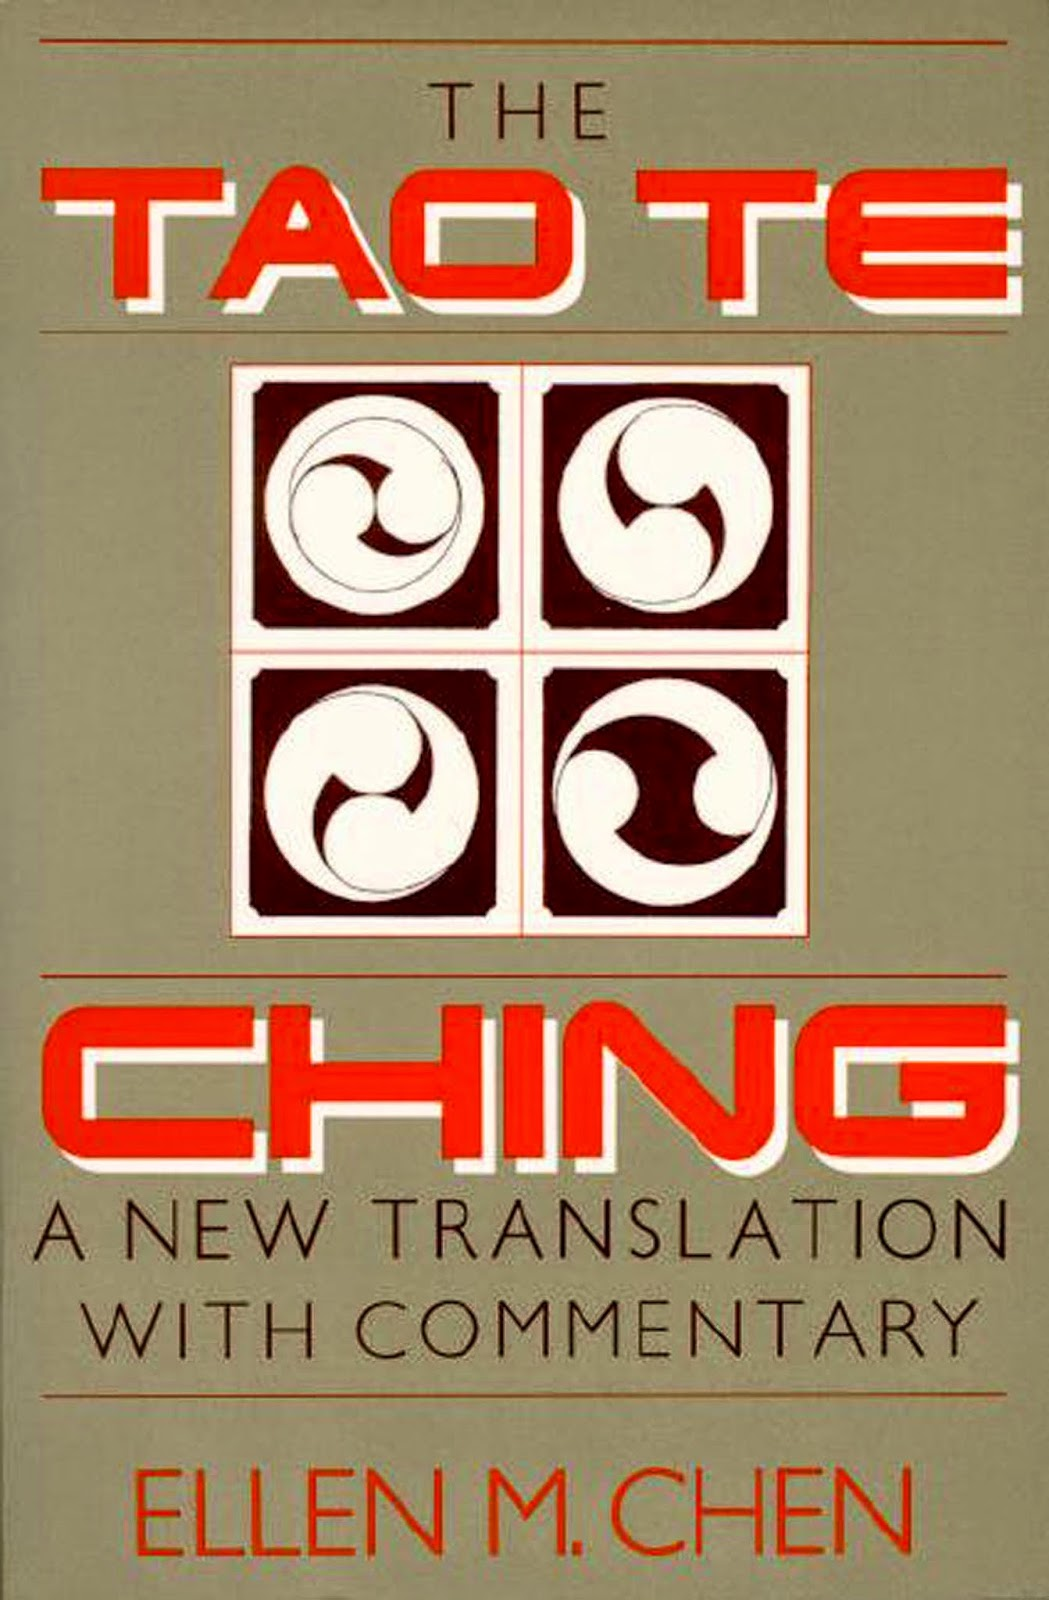 bonnie s books  the tao te ching a new translation commentary by ellen m chen 1989